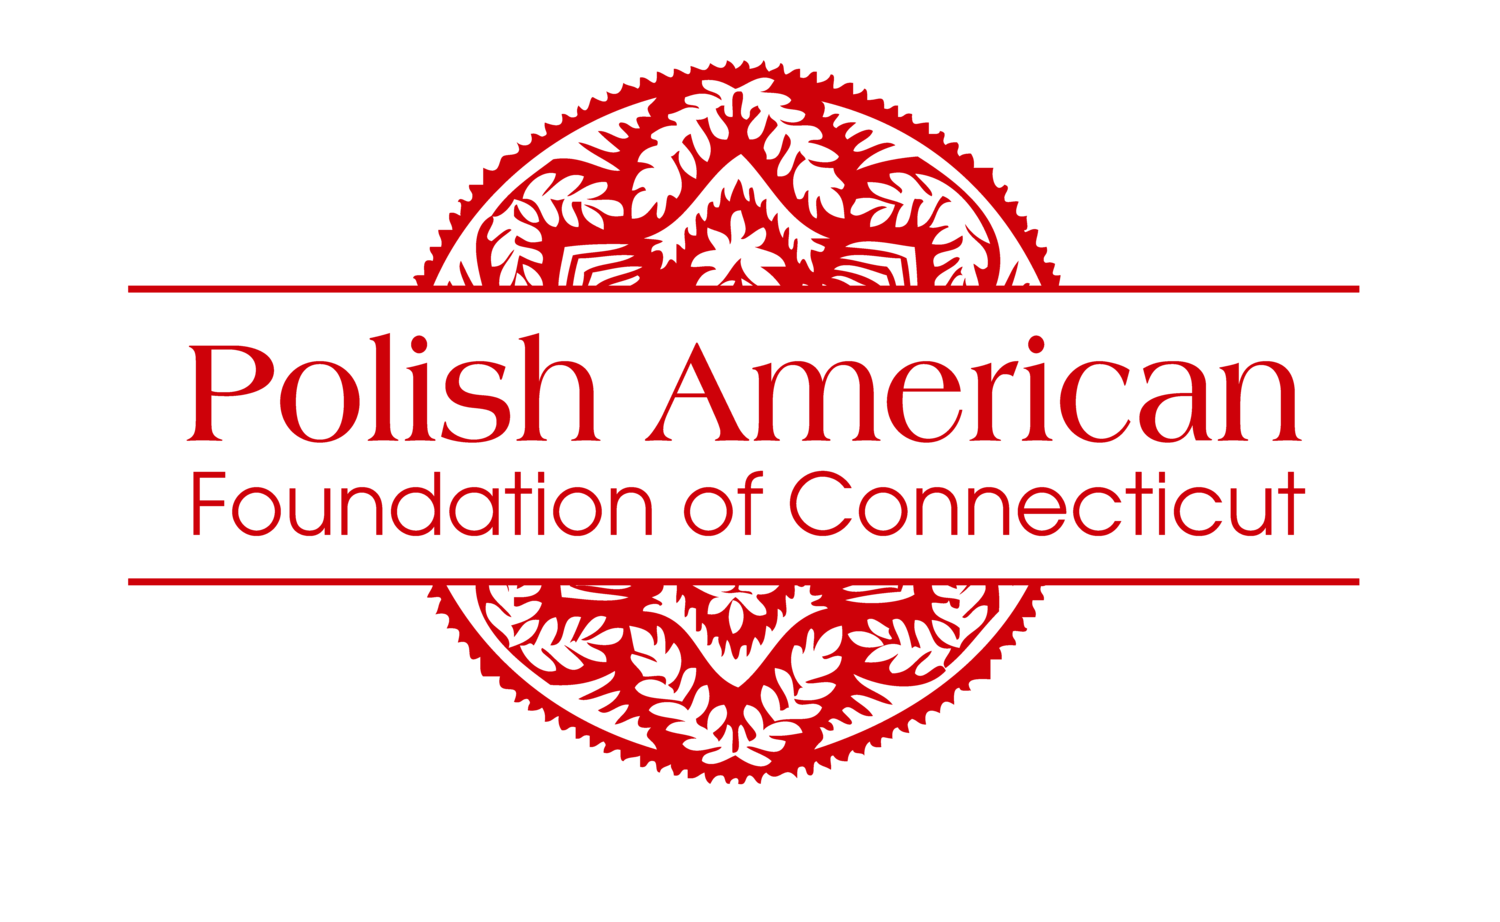 Polish American Foundation